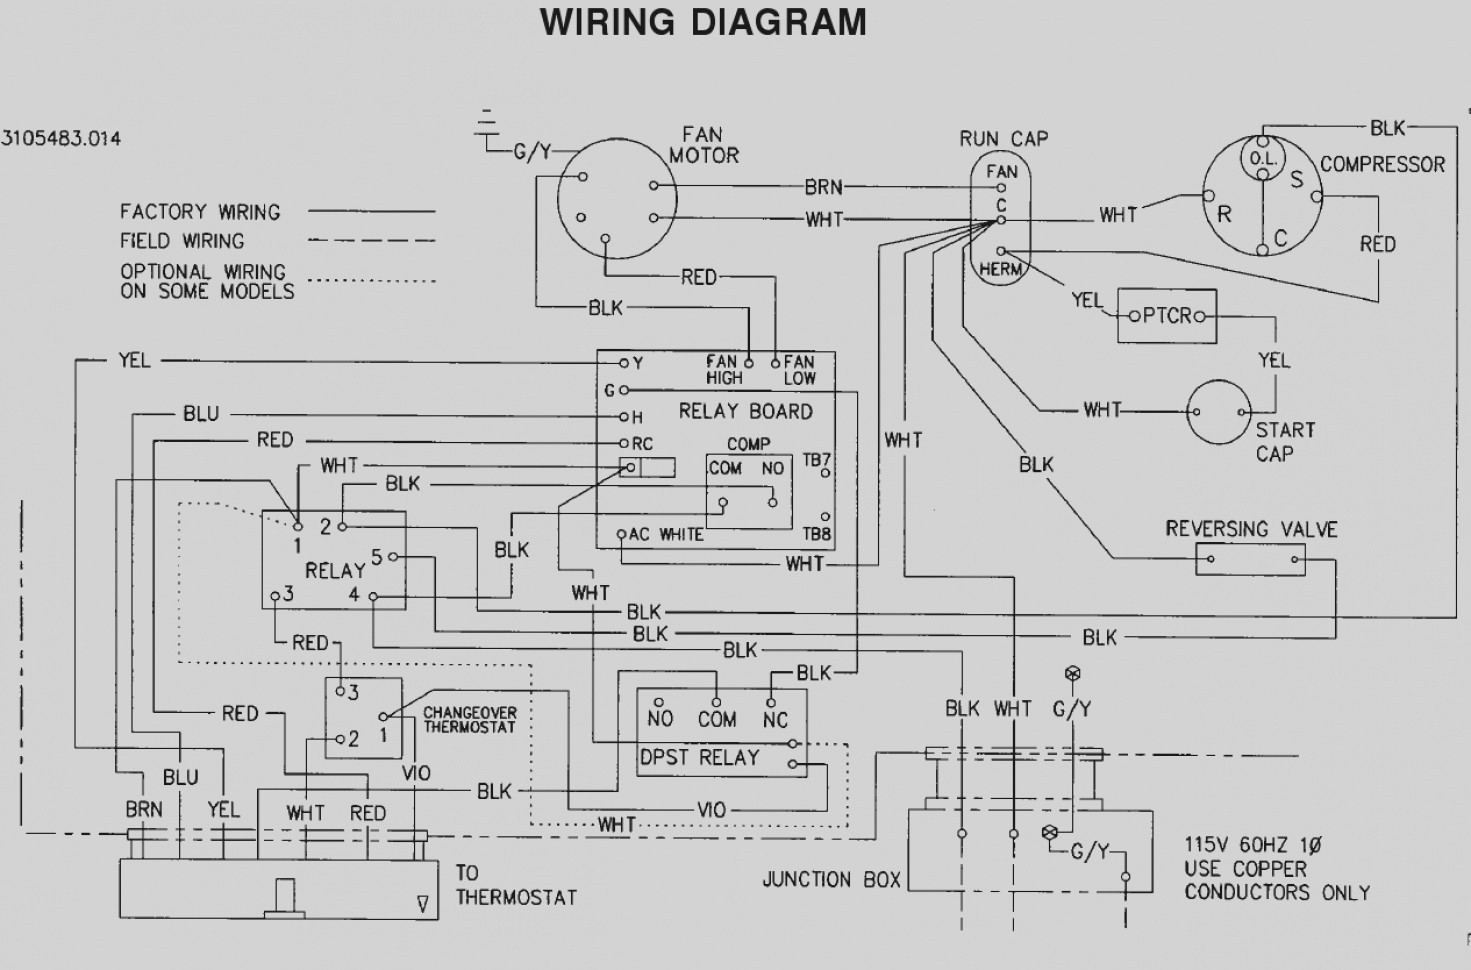 Elegant Dometic Duo Therm Thermostat Wiring Diagram For With